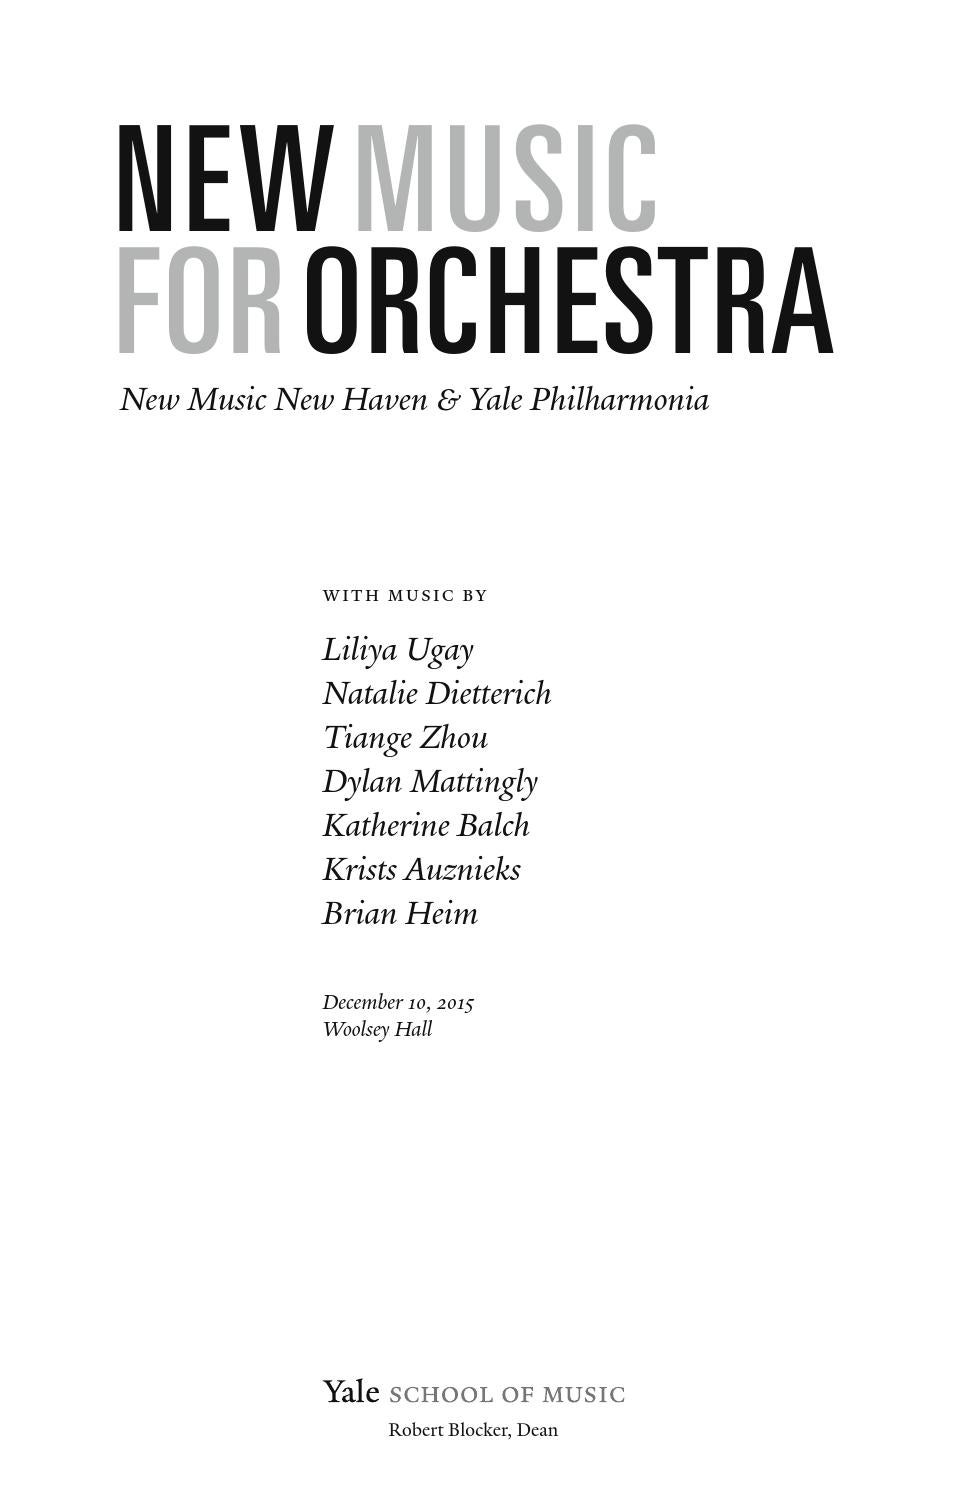 New Music for Orchestra, Dec 10 by Yale School of Music - issuu